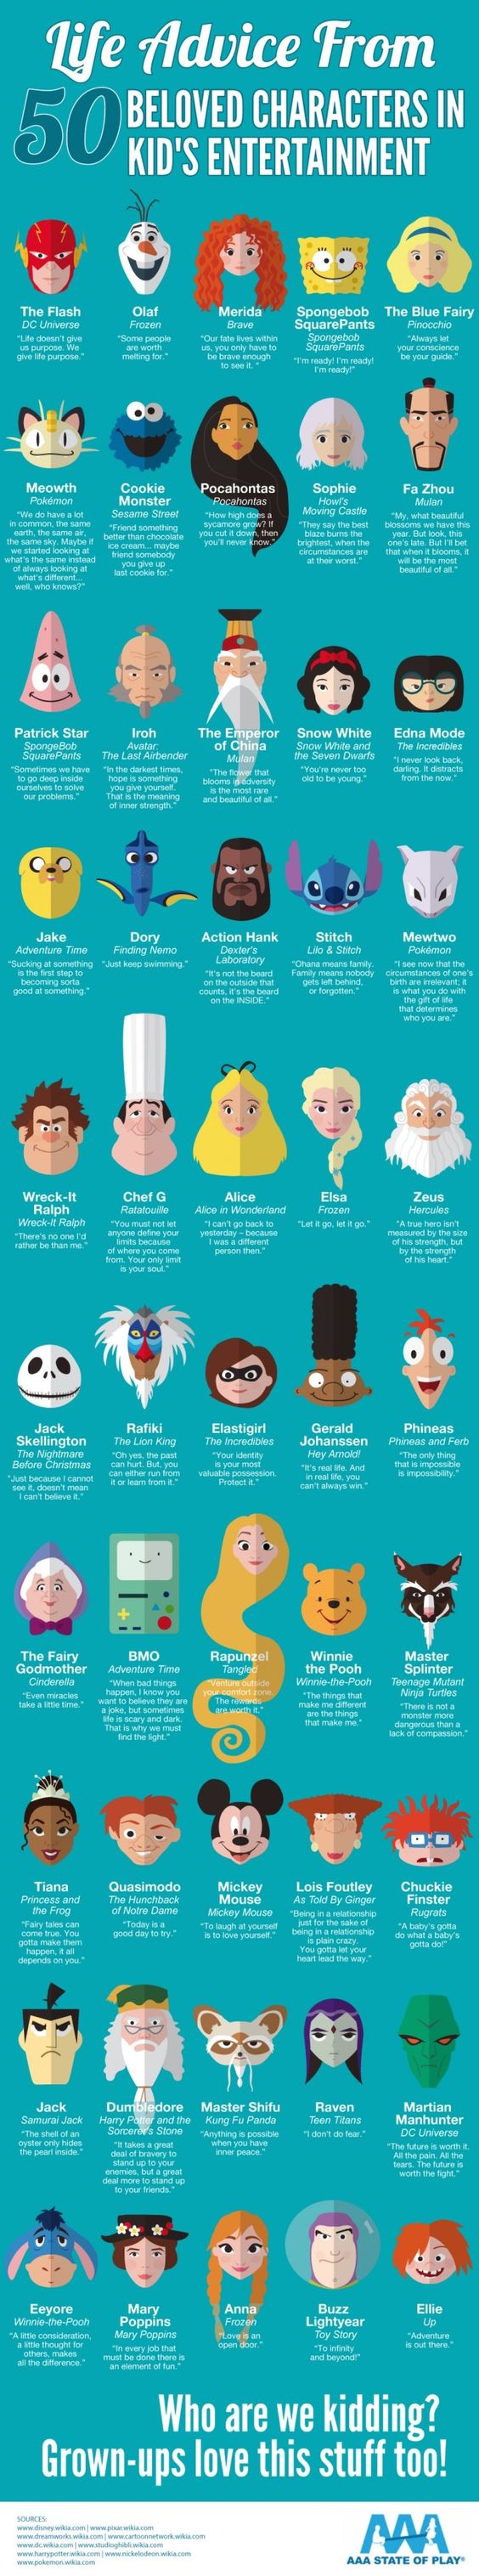 Life quotes from famous book and cartoon characters - kids' stuff has a lot of stuff to teach/remind adults of too.